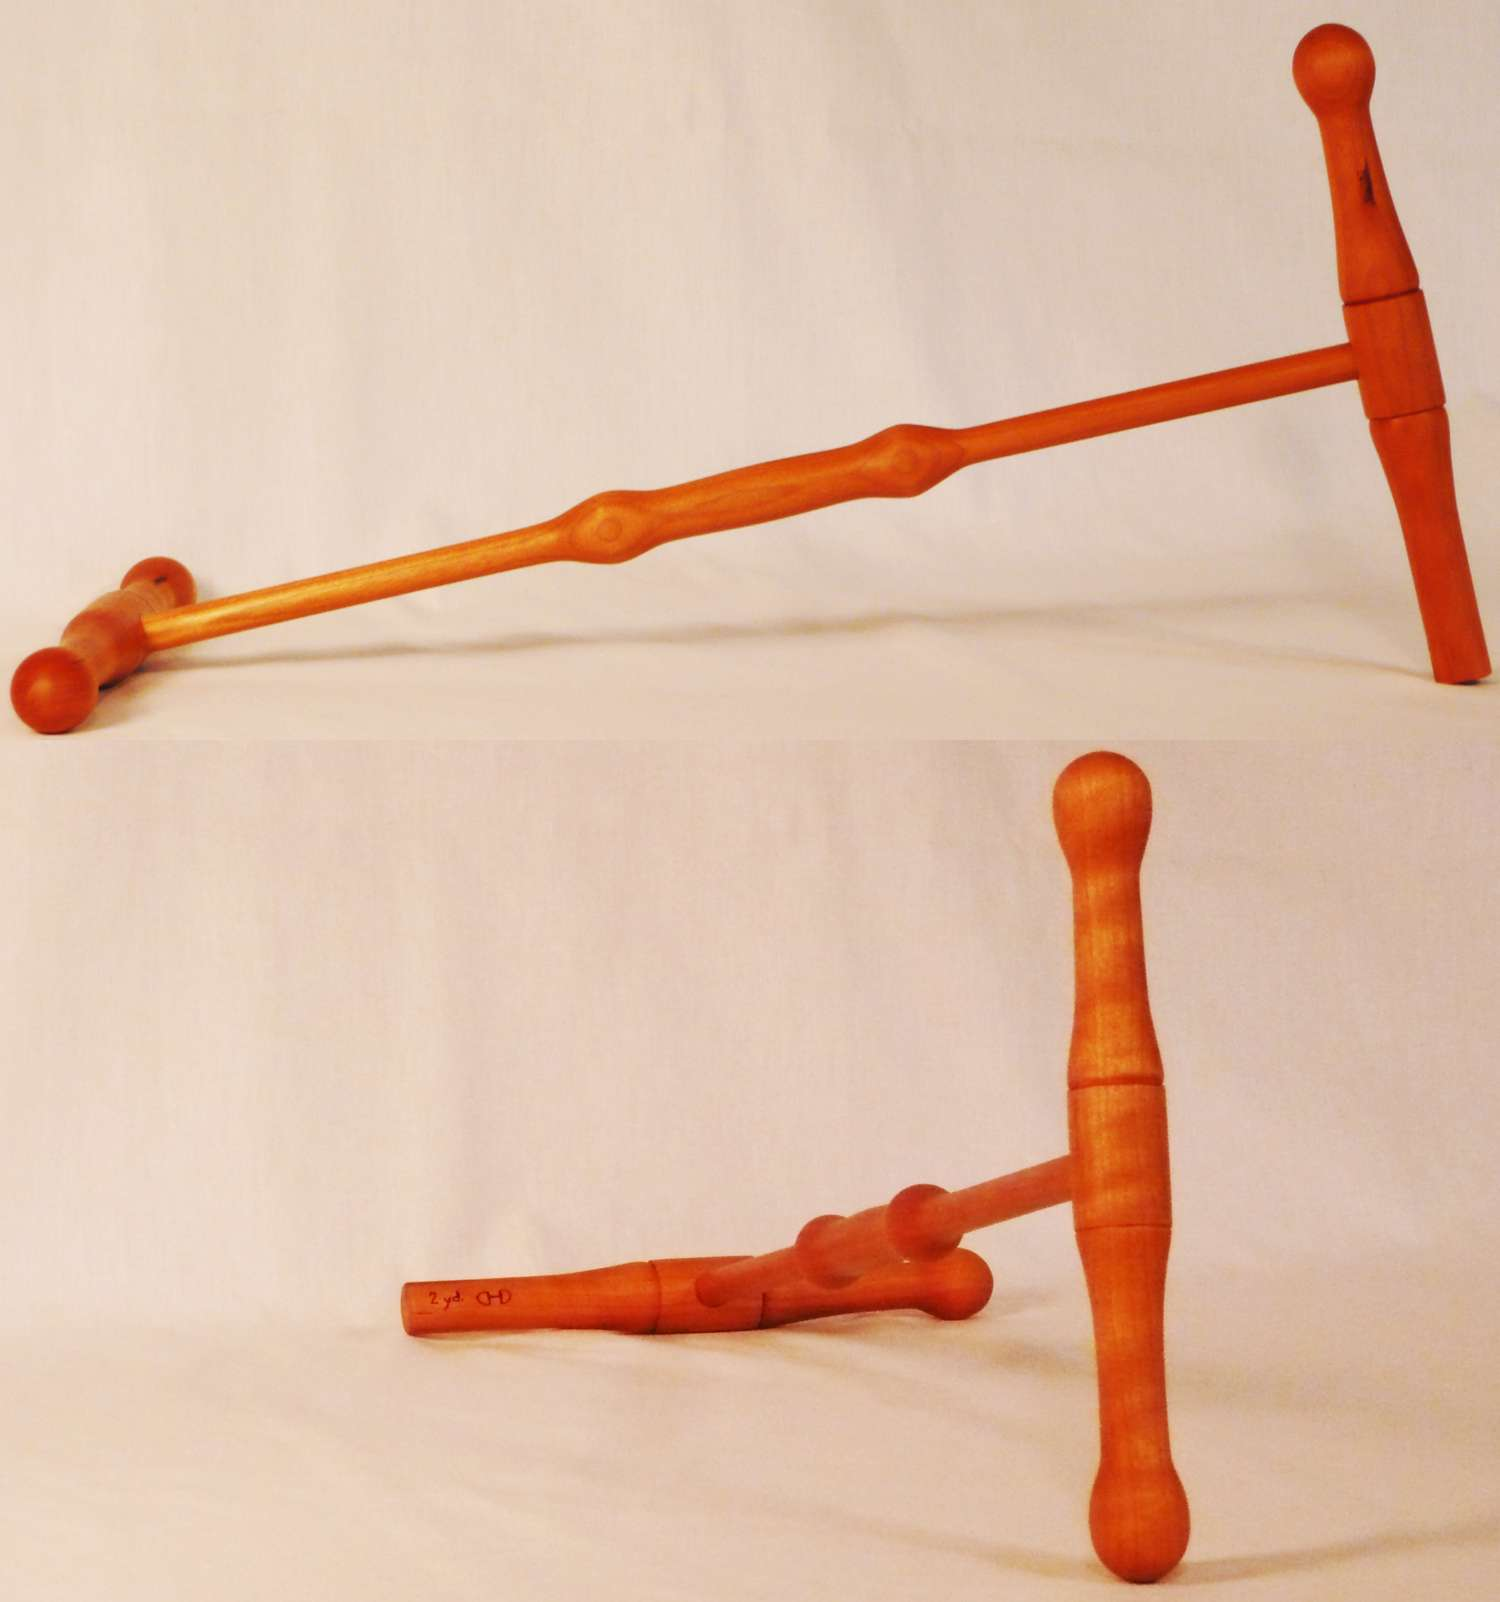 Niddy-Noddy hand made from Cherry wood by Cynthia D. Haney.  Tool for making 2 yd. skeins, hanks, of yarn.  72 inches